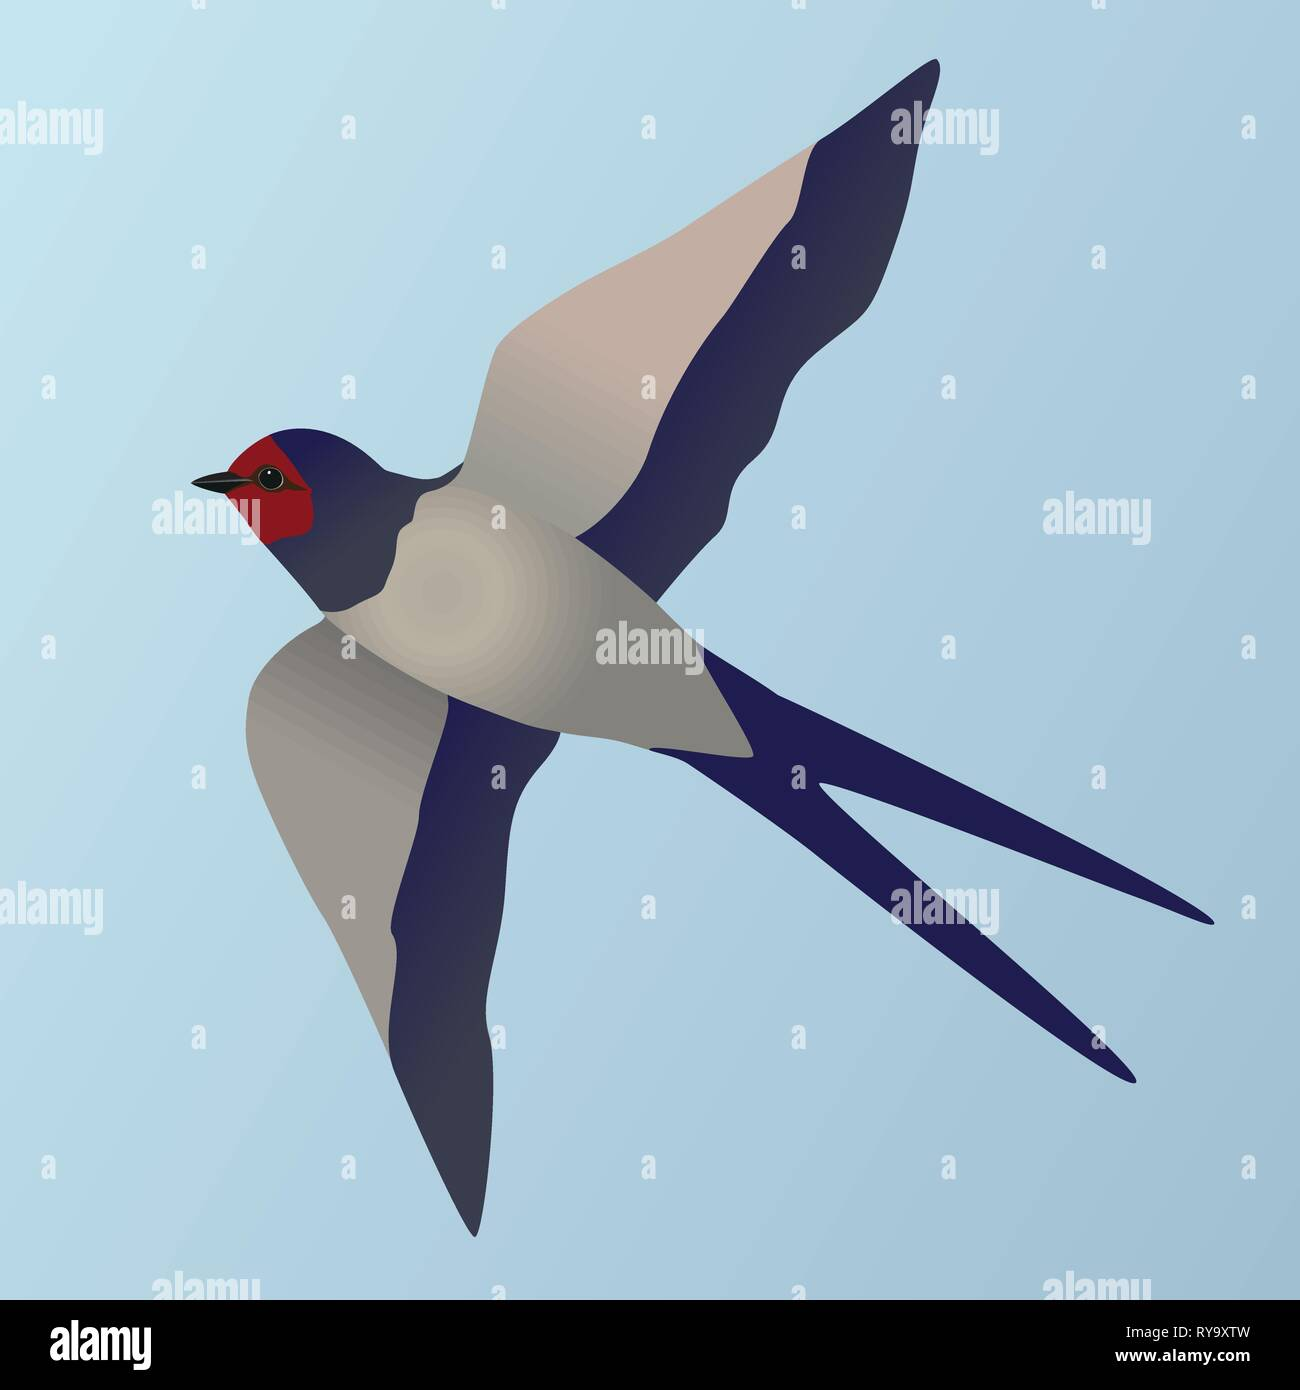 An illustration of a flying farmers swallow - Stock Vector